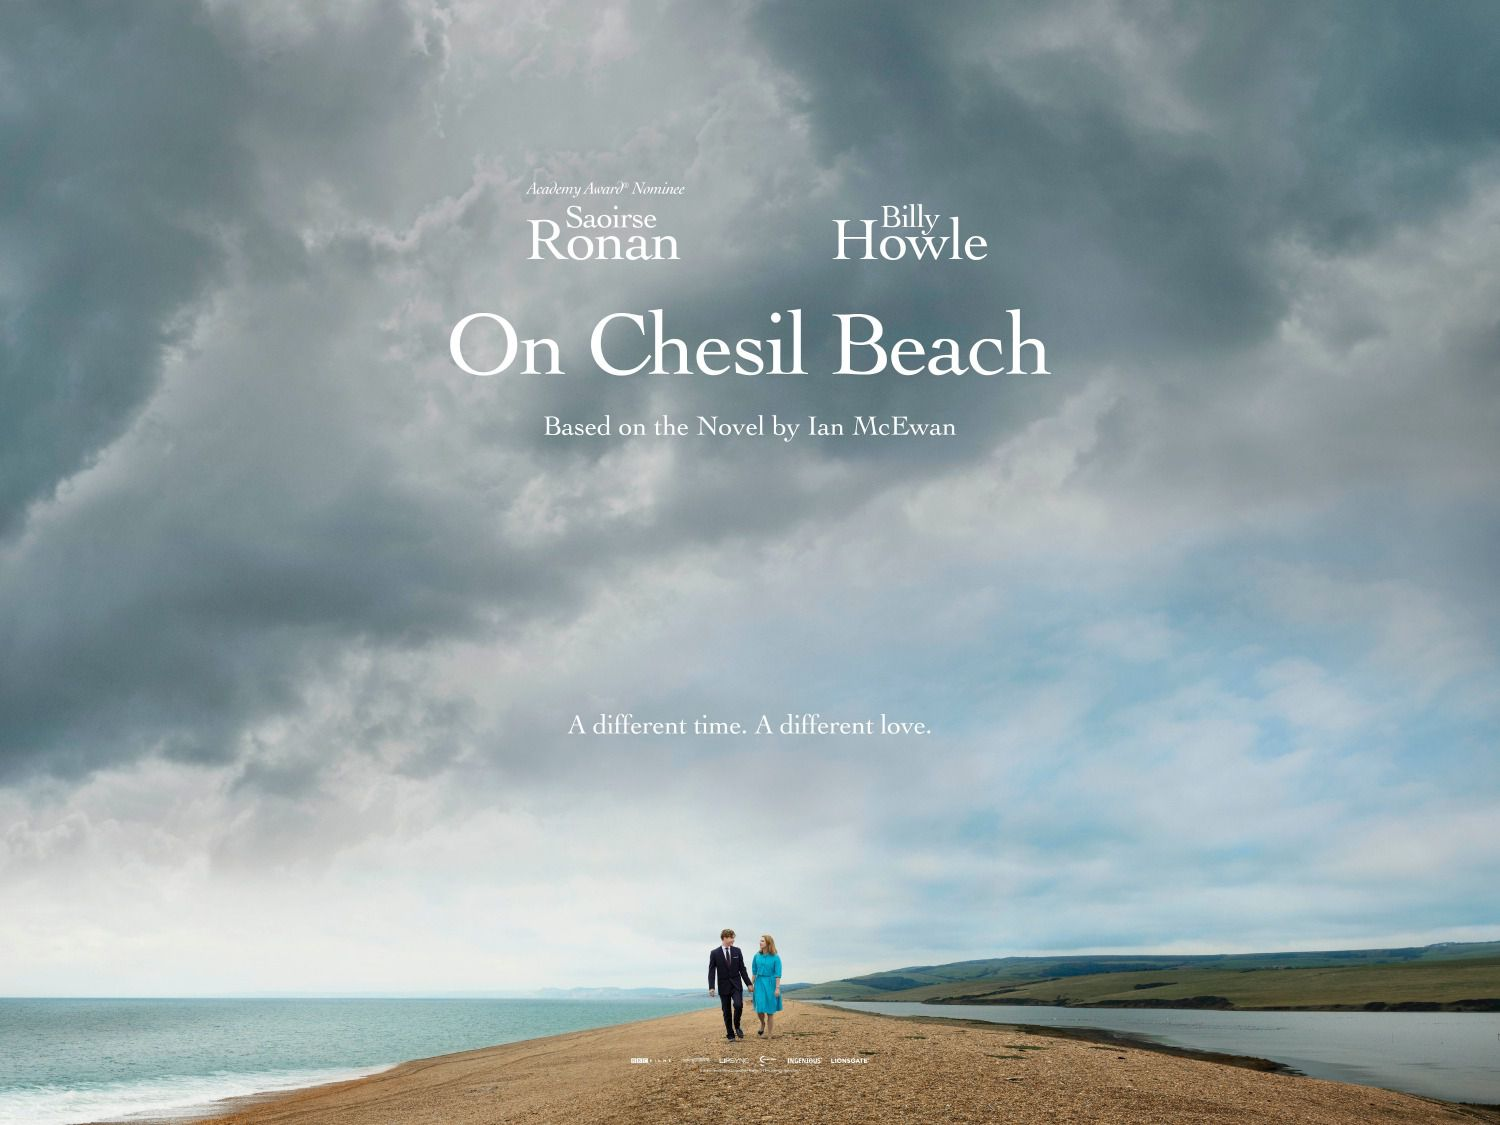 On Chesil Beach - film poster 2018